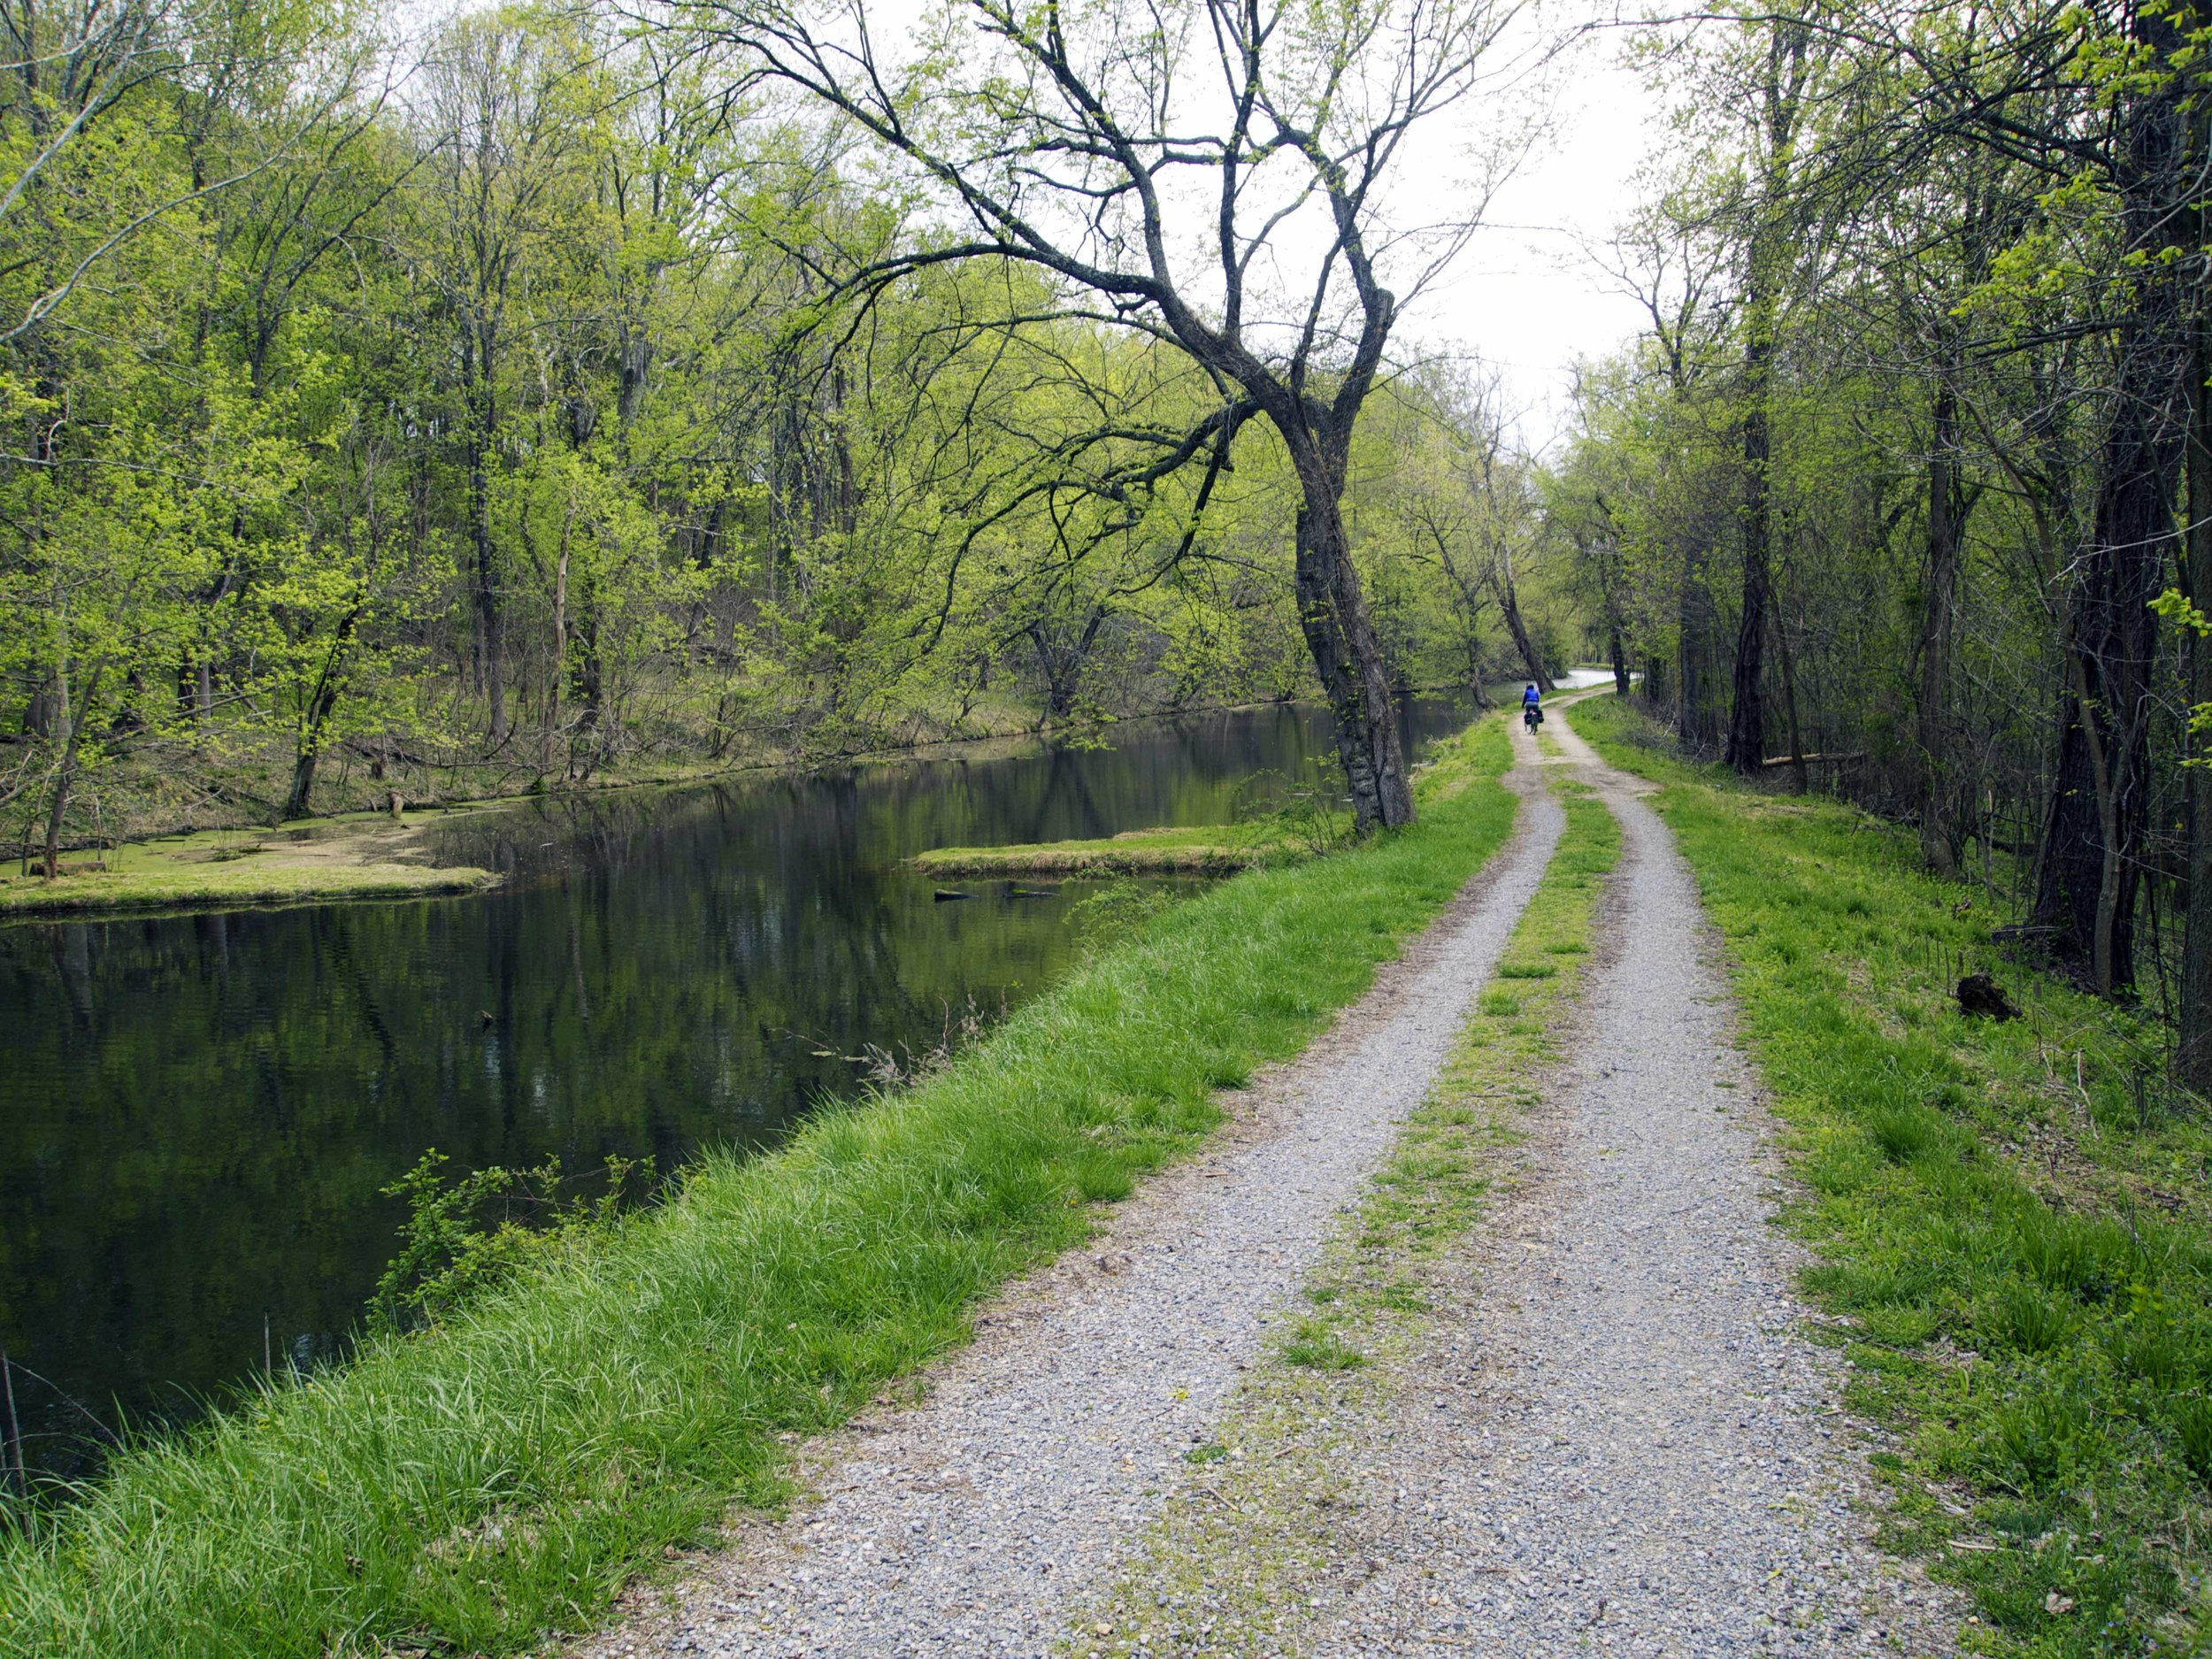 C & O Canal and Towpath